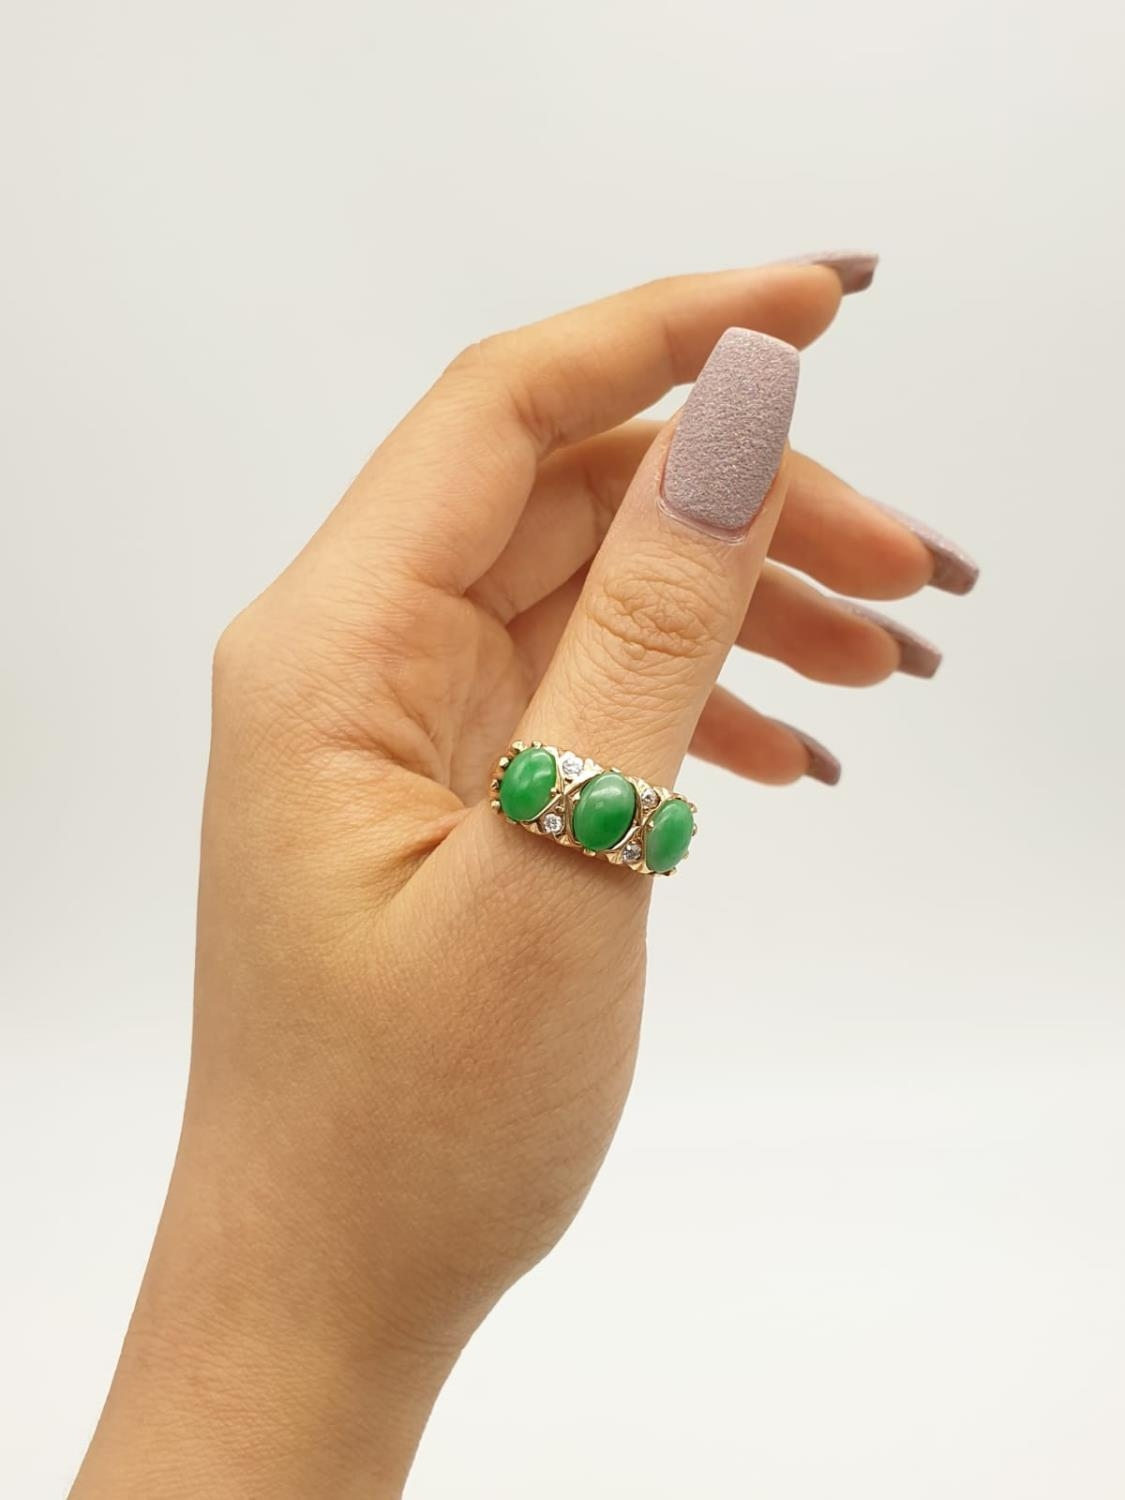 14k yellow gold antique ring with trilogy green jadeite and decorated with diamonds, weight 8.6g and - Image 5 of 6